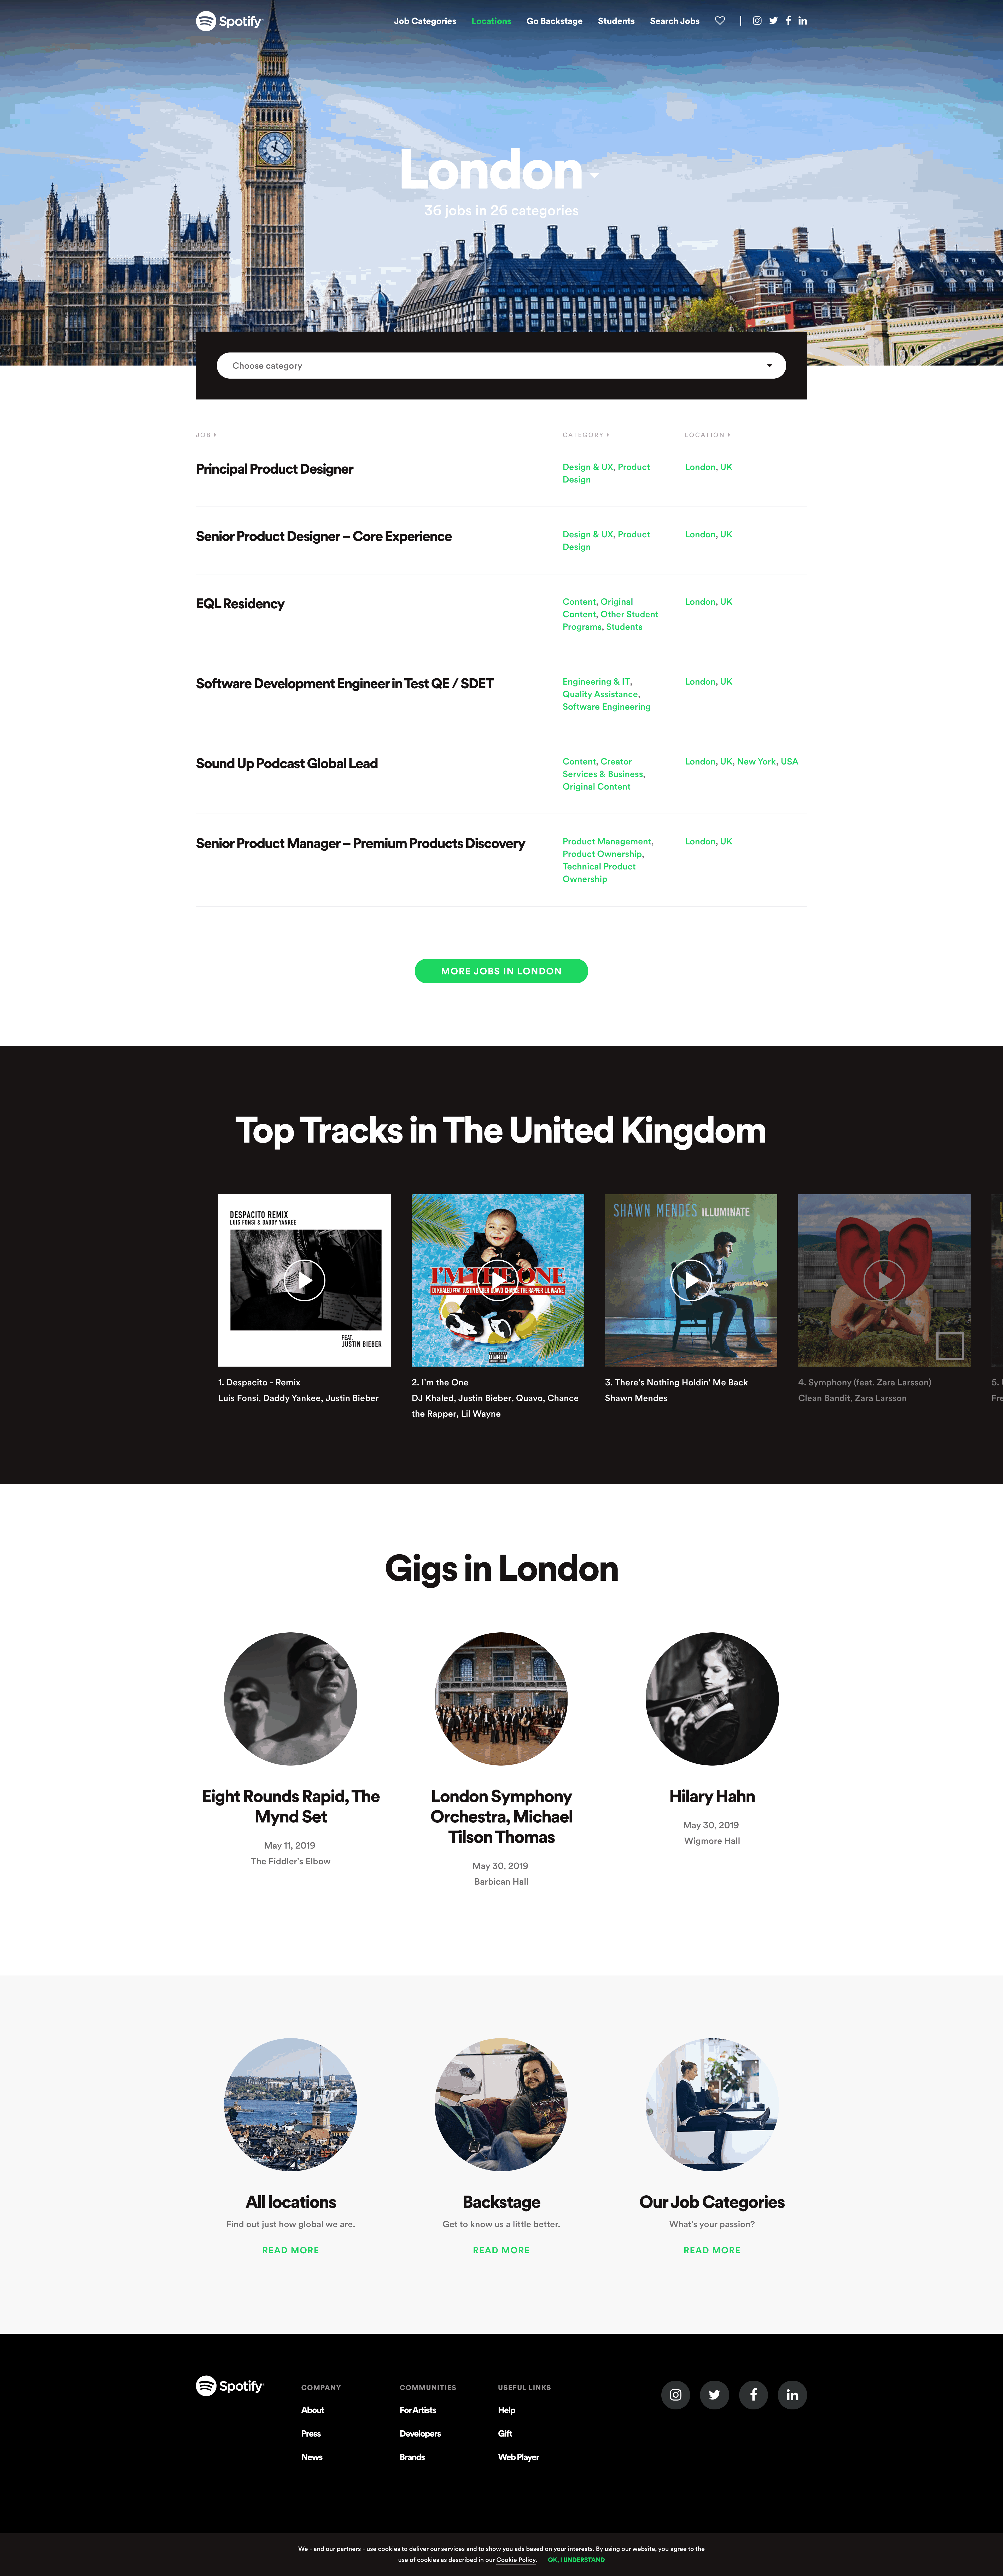 Join Us: London by Spotify